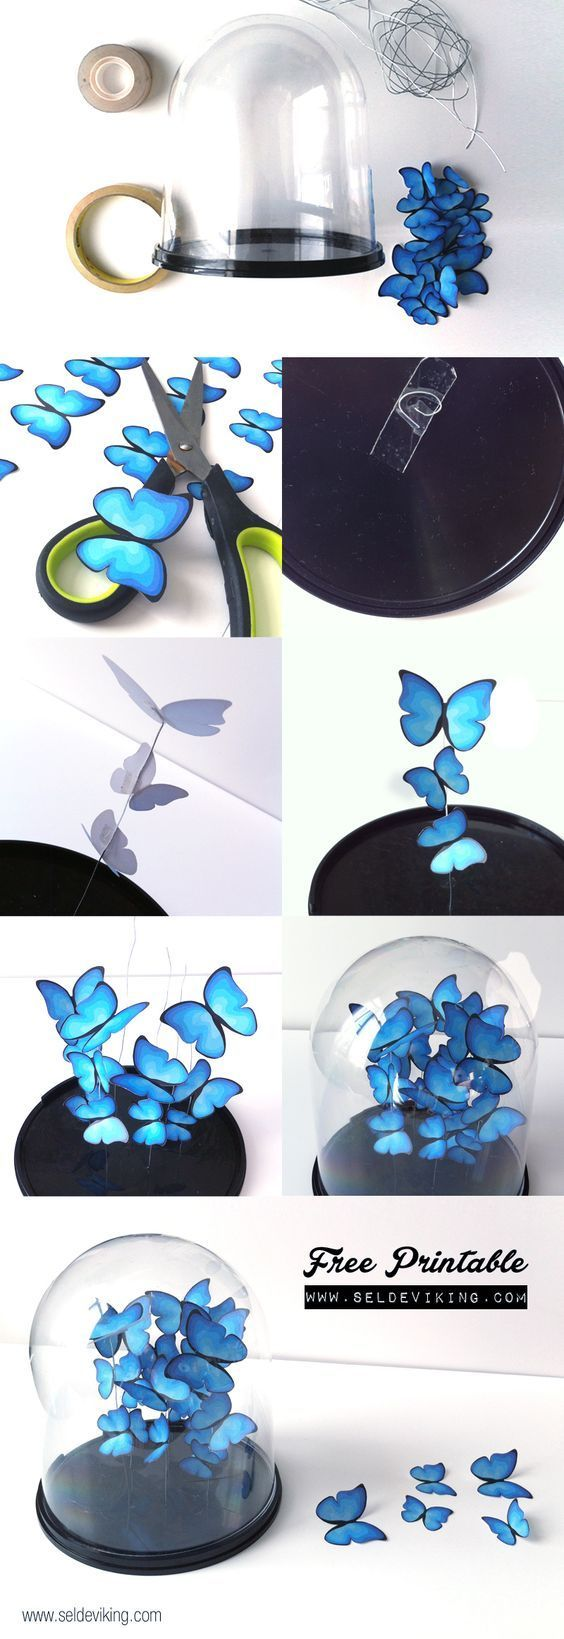 Cool Turquoise Room Decor Ideas - DIY Butterfly Decor - Fun Aqua Decorating Looks and Color for Teen Bedroom, Bathroom, Accent